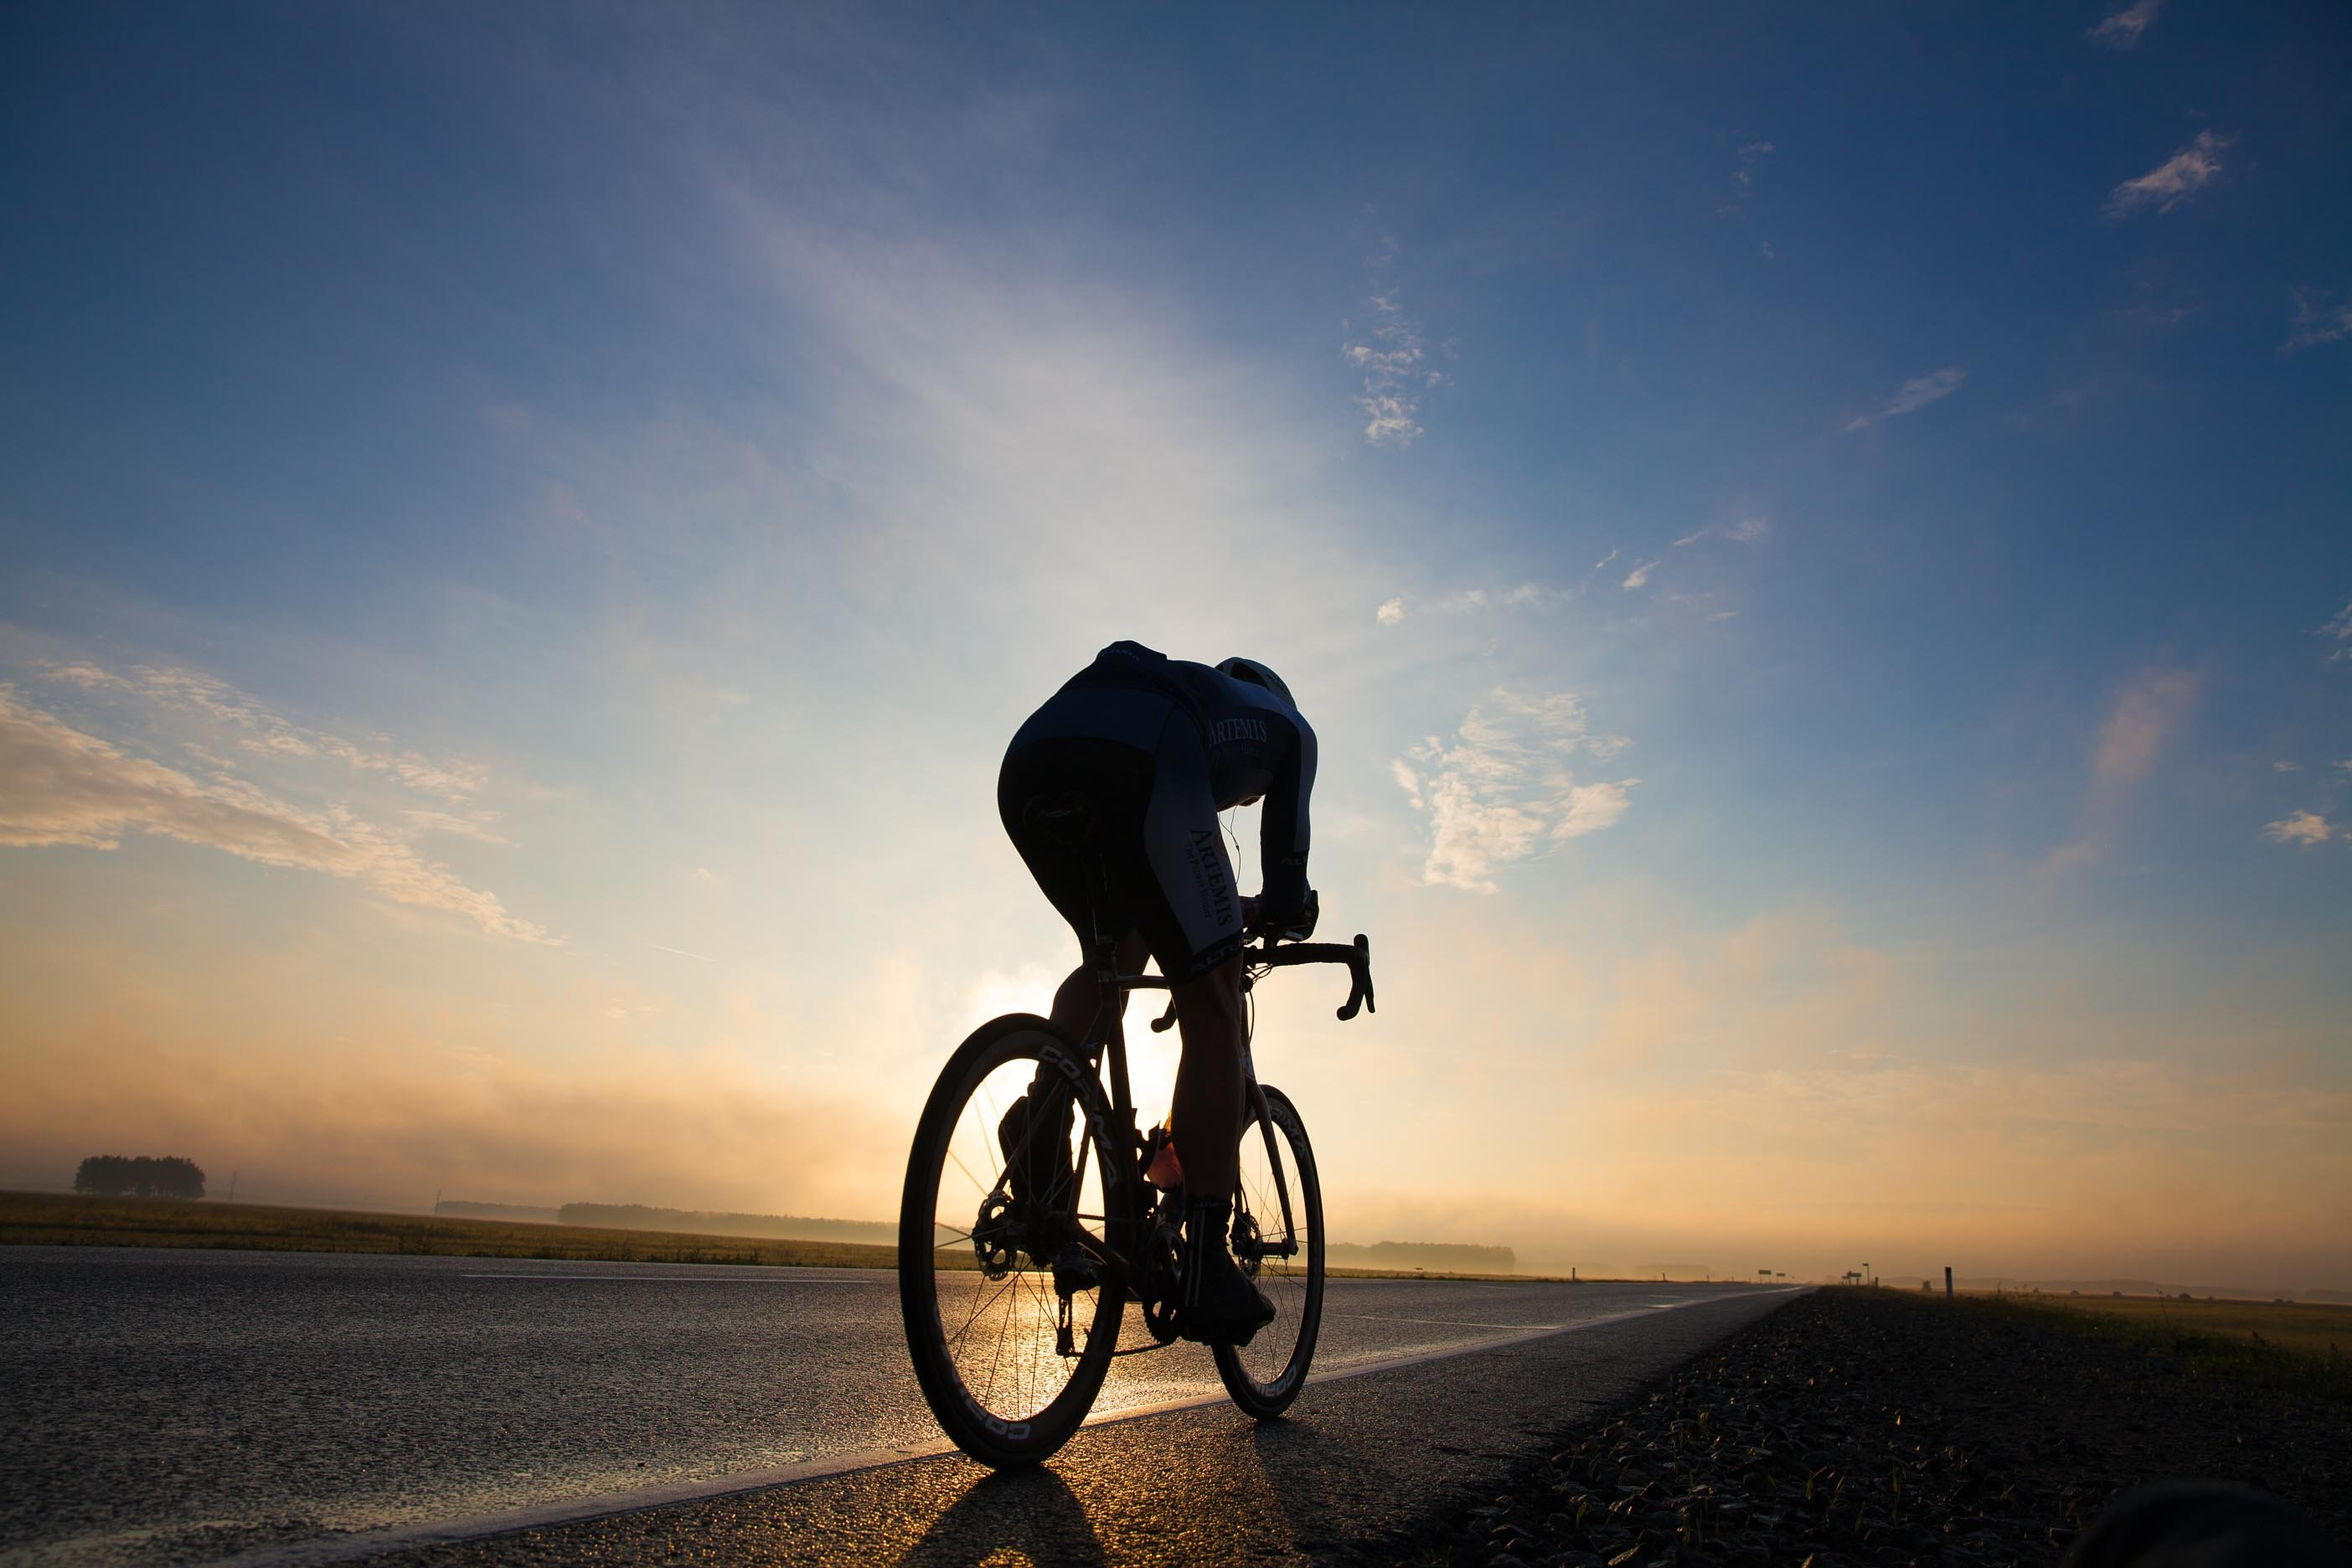 How To Fuel For Ultra Endurance Rides According To Mark